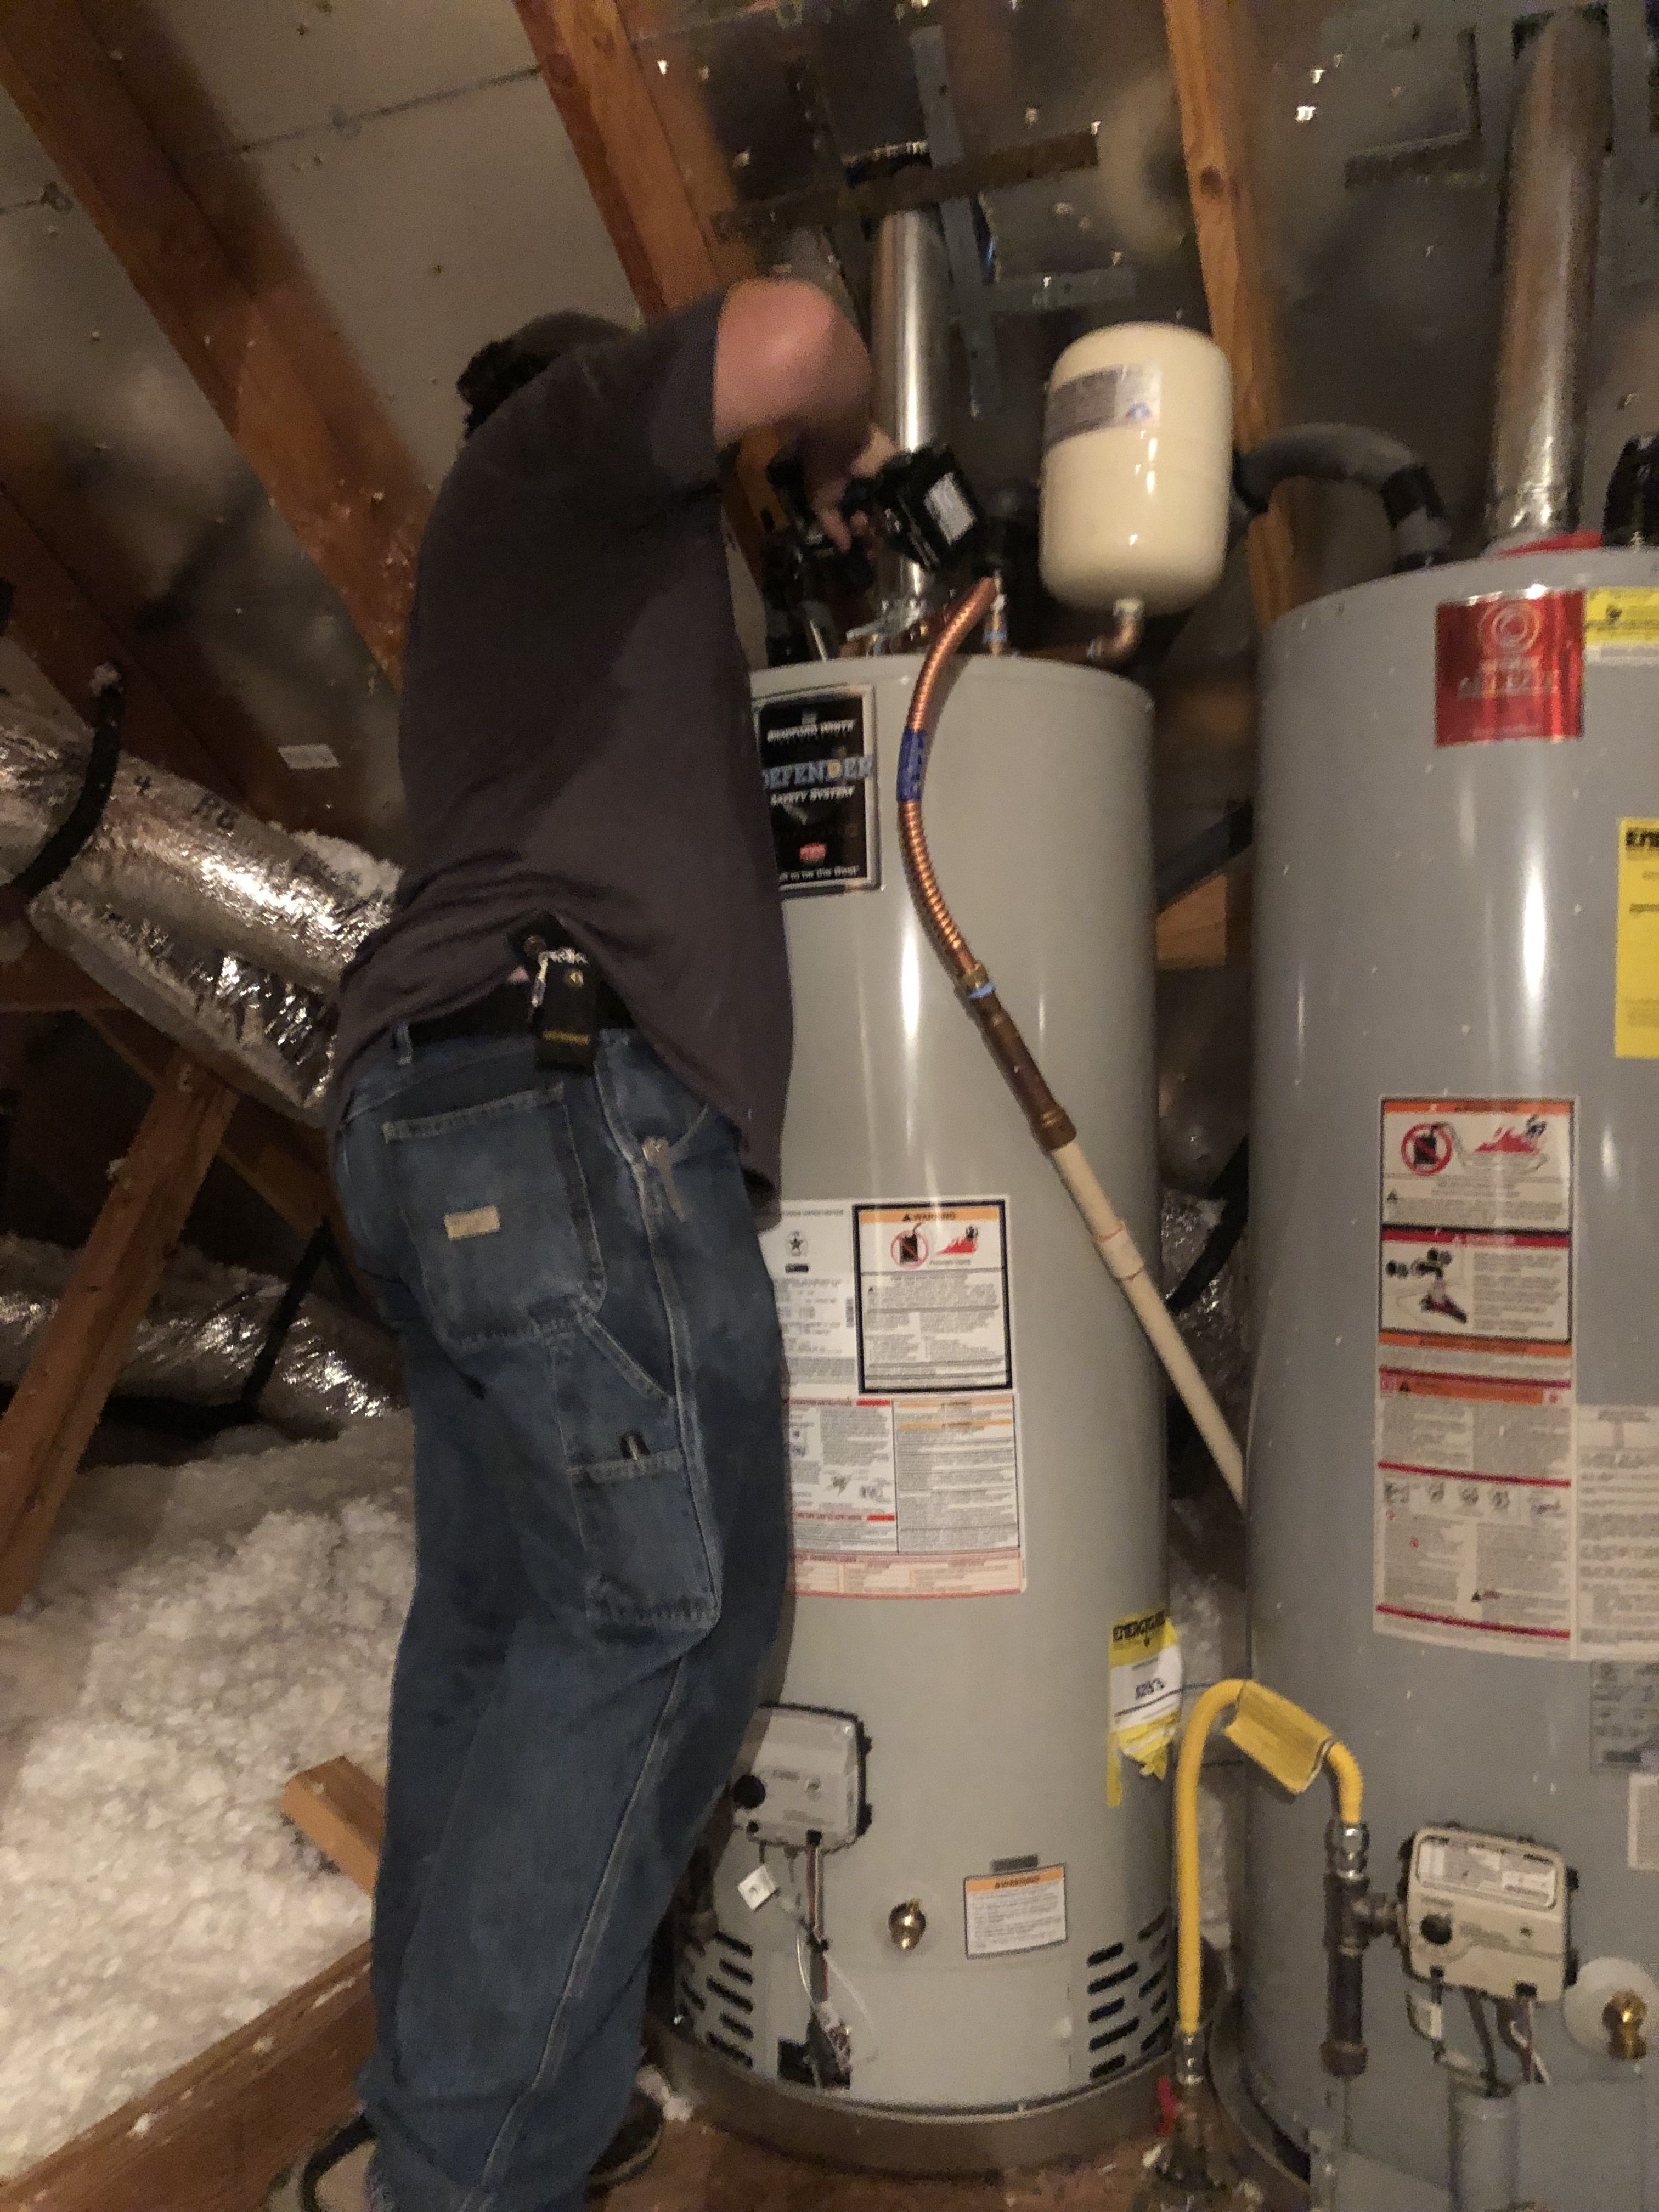 Shad Is Sweating Like Crazy Installing These Twin Water Heaters In The Attic In 90 Weather We Go The Extra Mile To Make Hot Water Heater Water Heater Heater